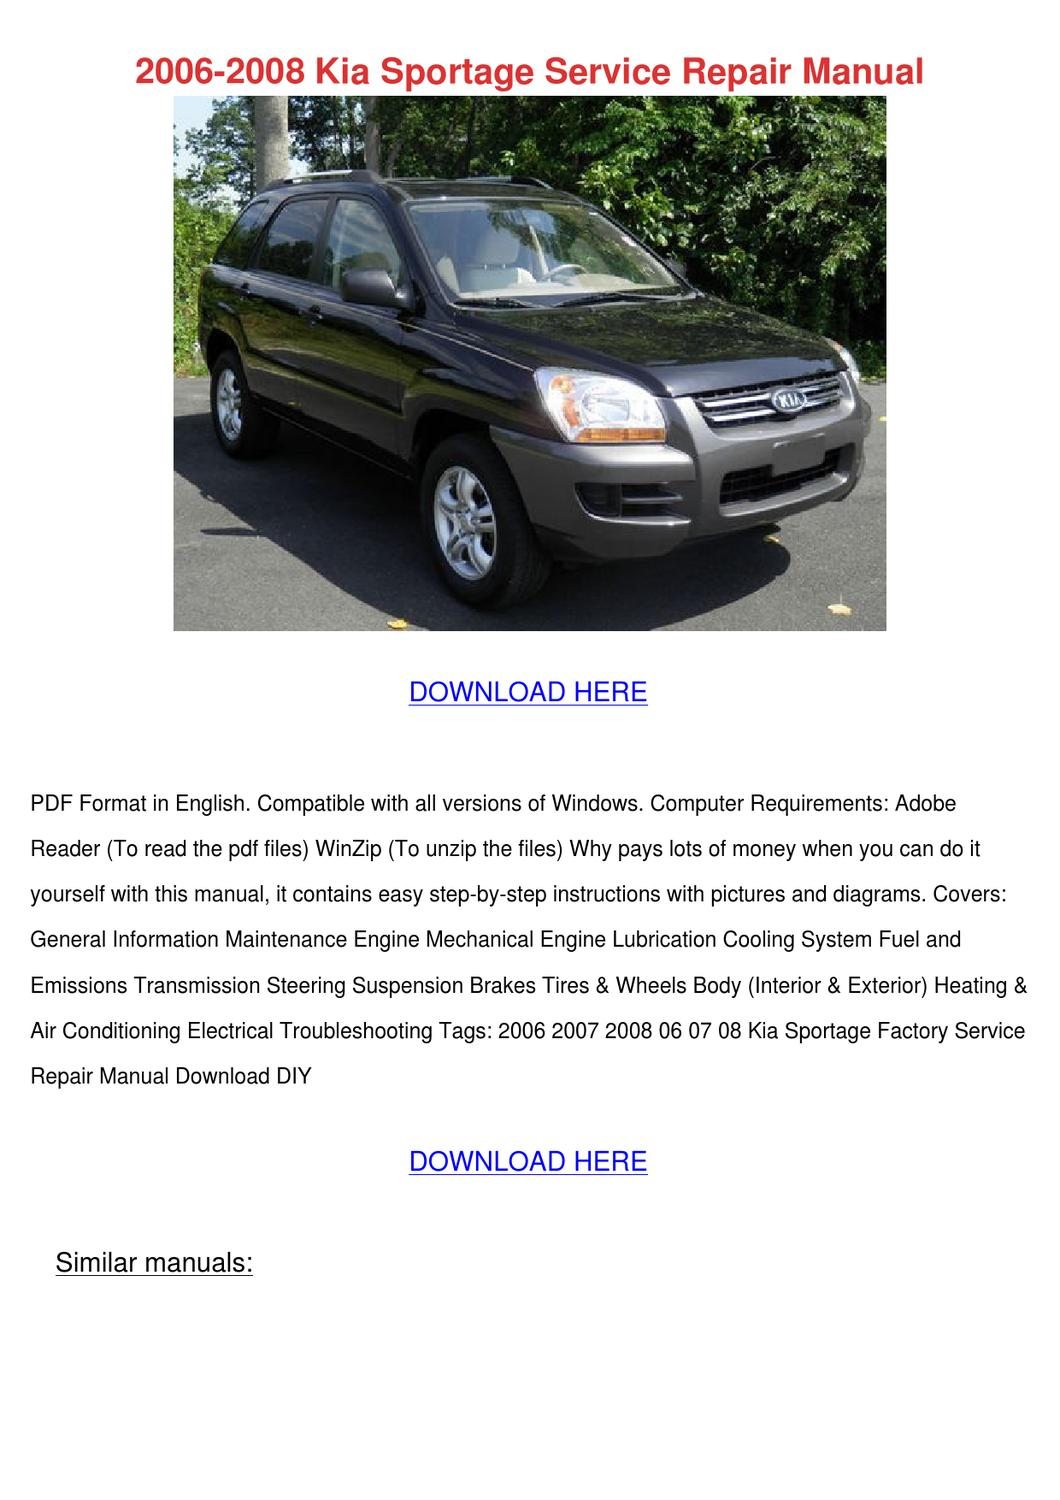 manual for 2008 kia sportage